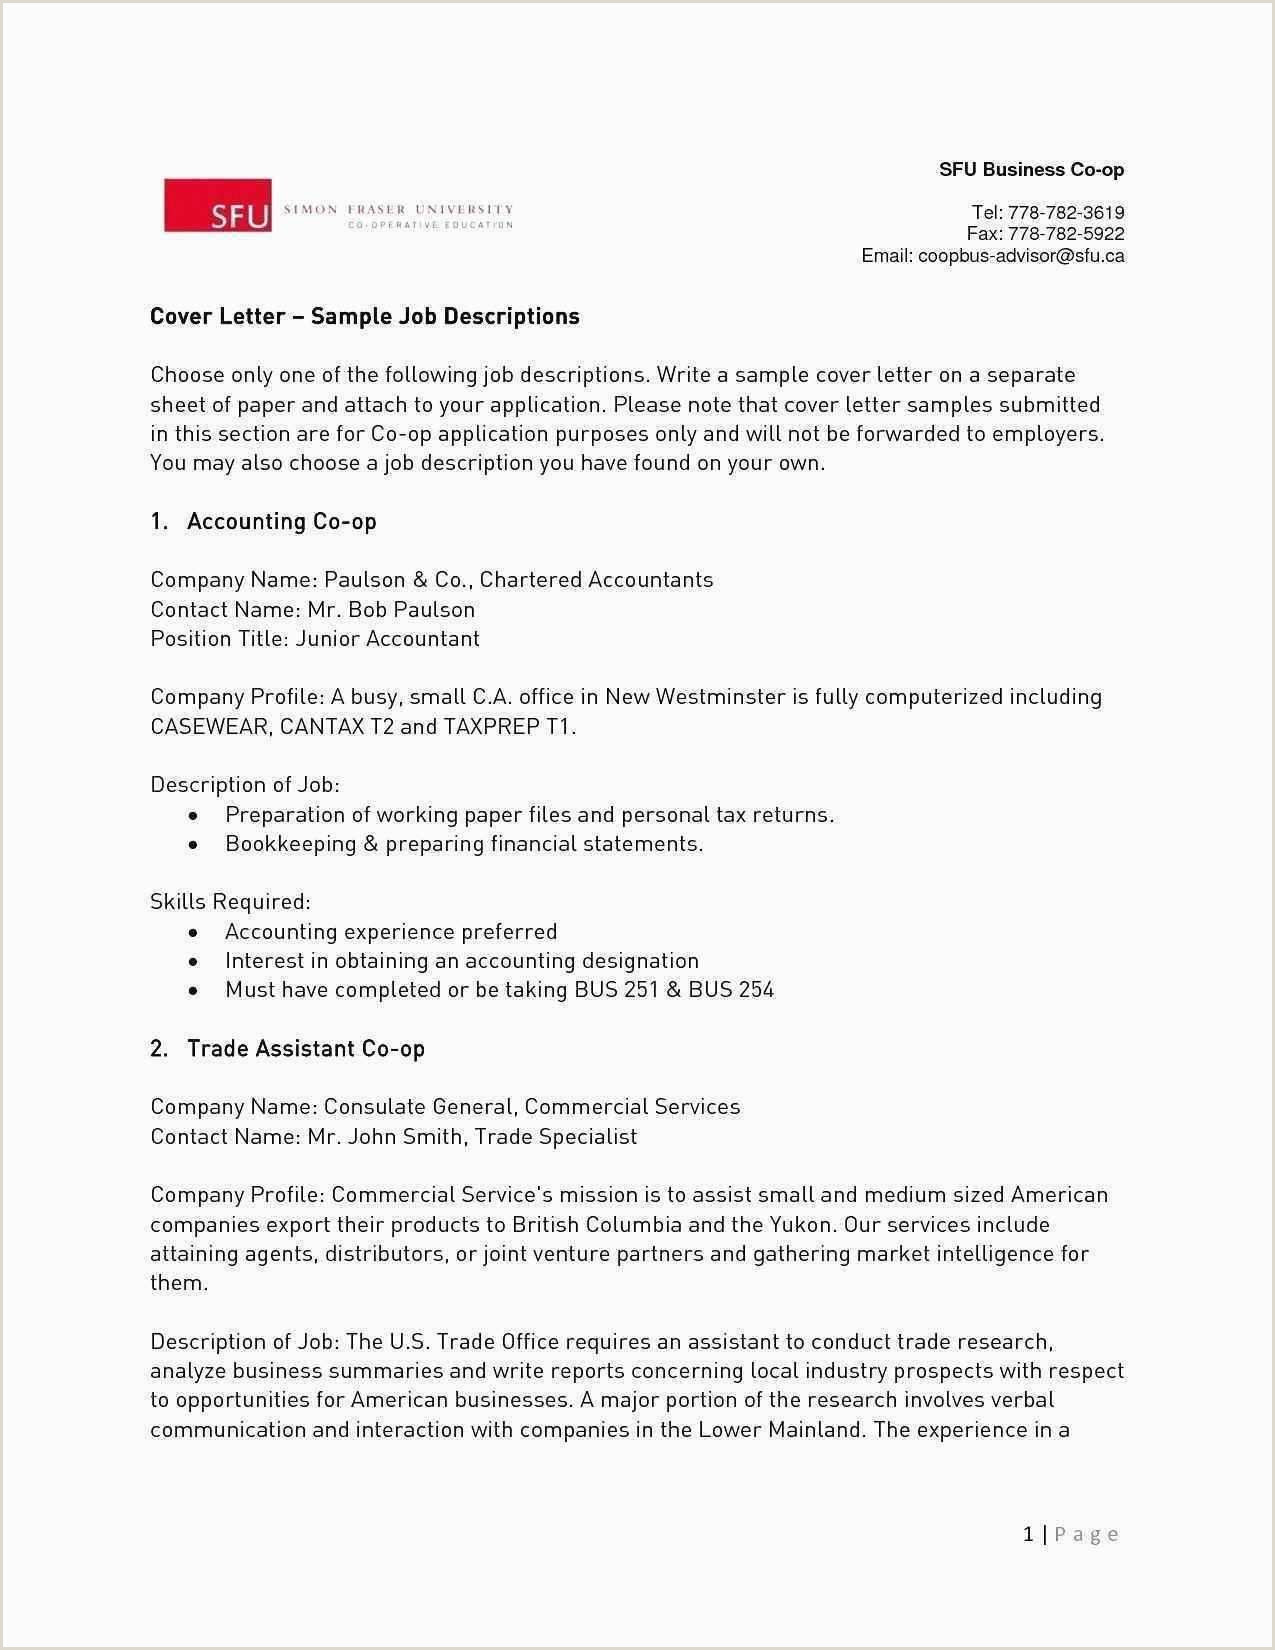 Accountant Cv Sample Accountant Resume Examples Best Cover Sheet for Resume Best